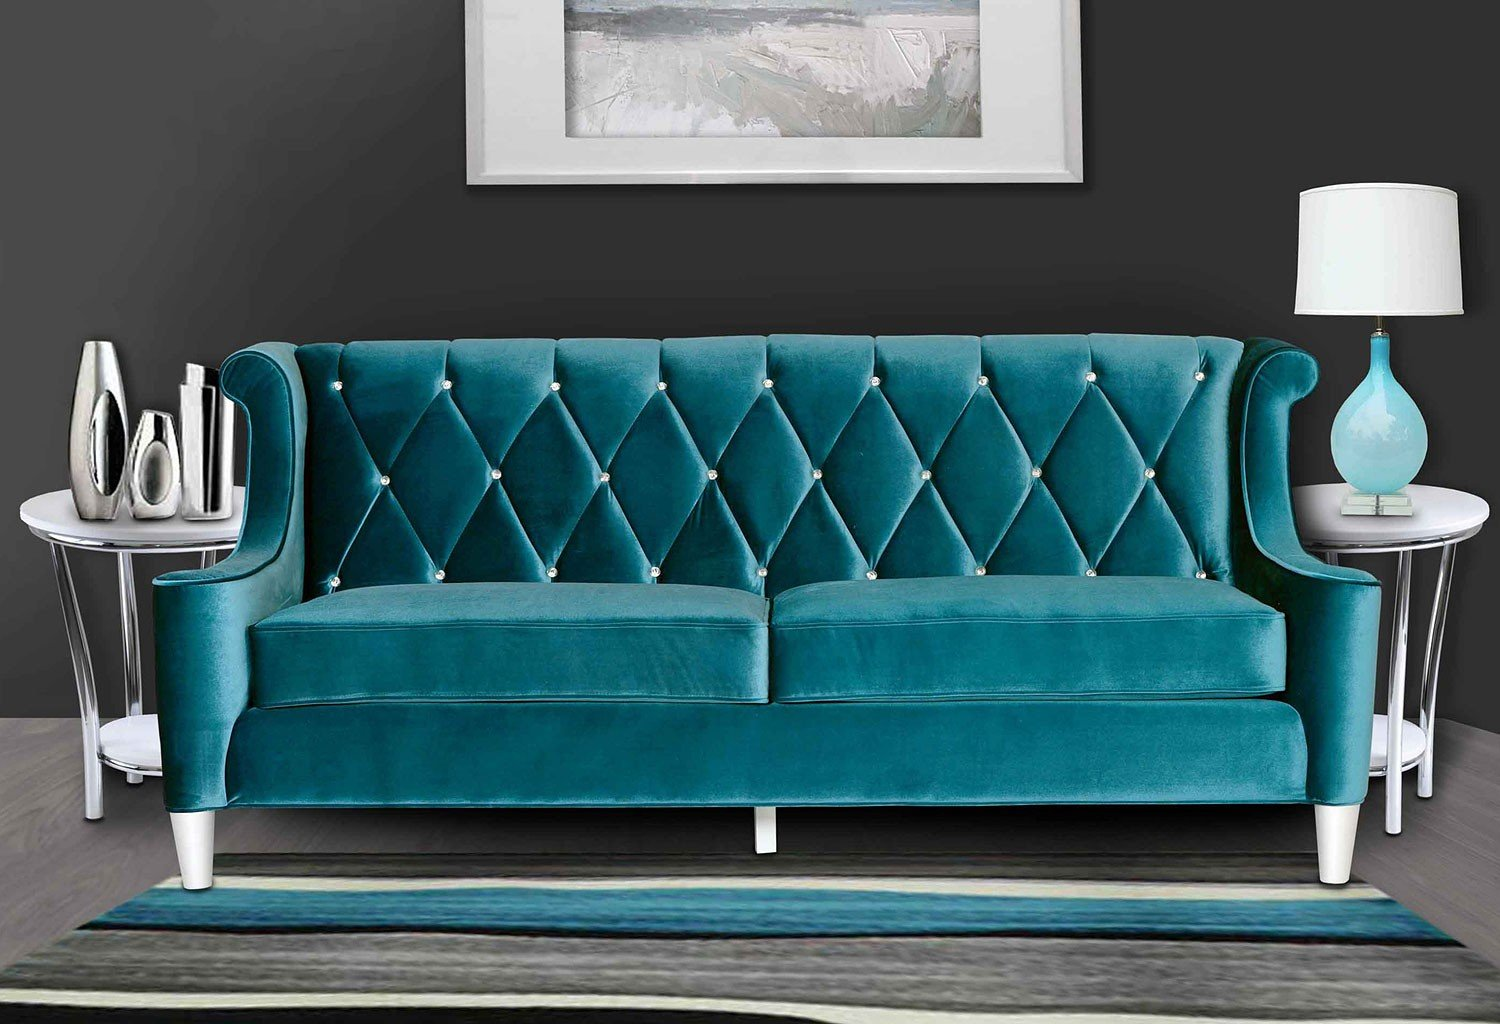 Barrister Sofa Blue Velvet